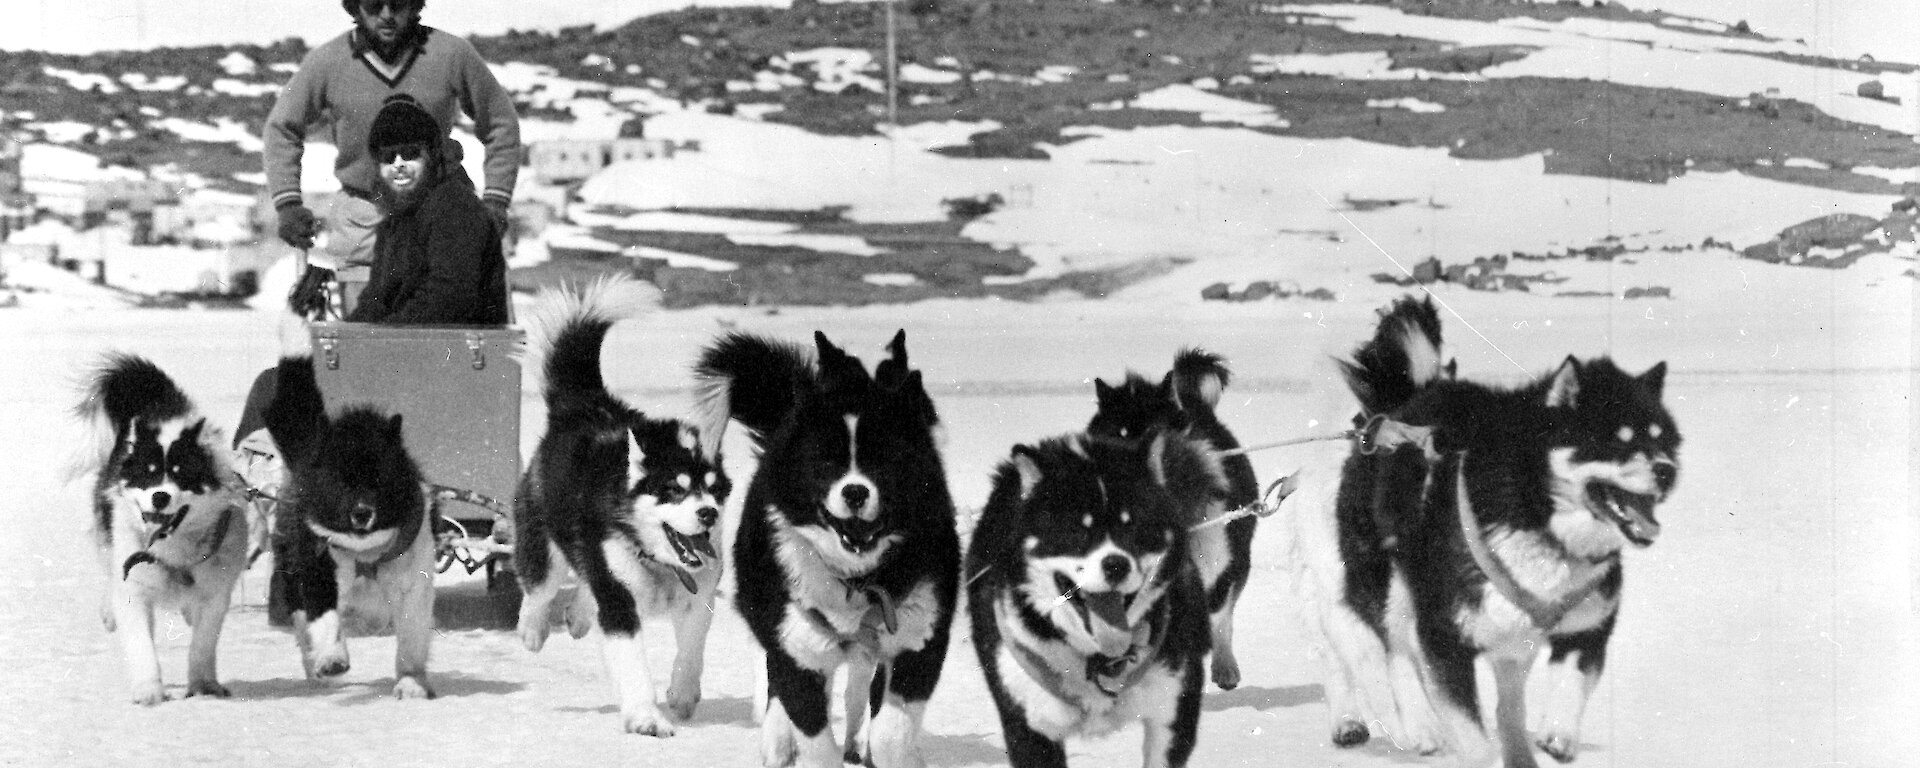 Black and white photo of expeditioner driving team of huskies towards camera.